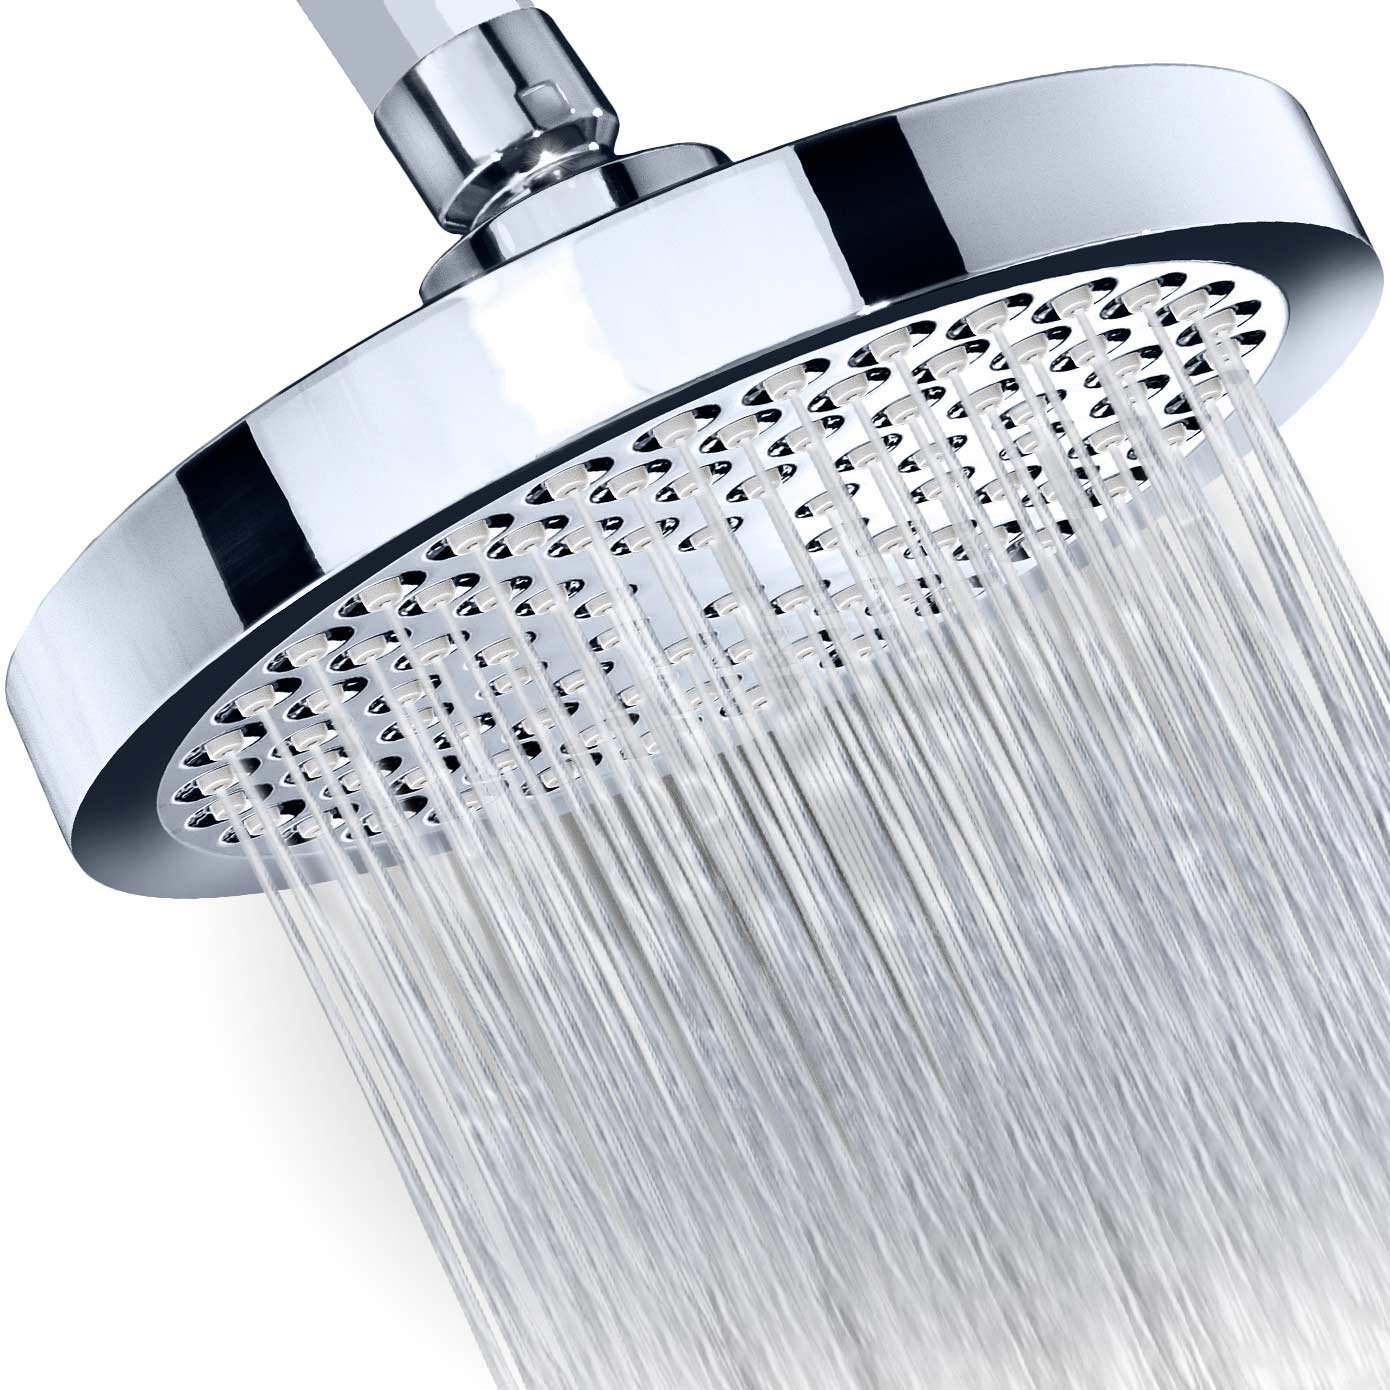 """Shower Head - Rainfall High Pressure 6"""" - Rain High Flow Fixed Luxury Chrome Showerhead - Removable Water Restrictor - Adjustable Metal Swivel Ball Joint - For the Best Relaxation and Spa by SomovWorld"""